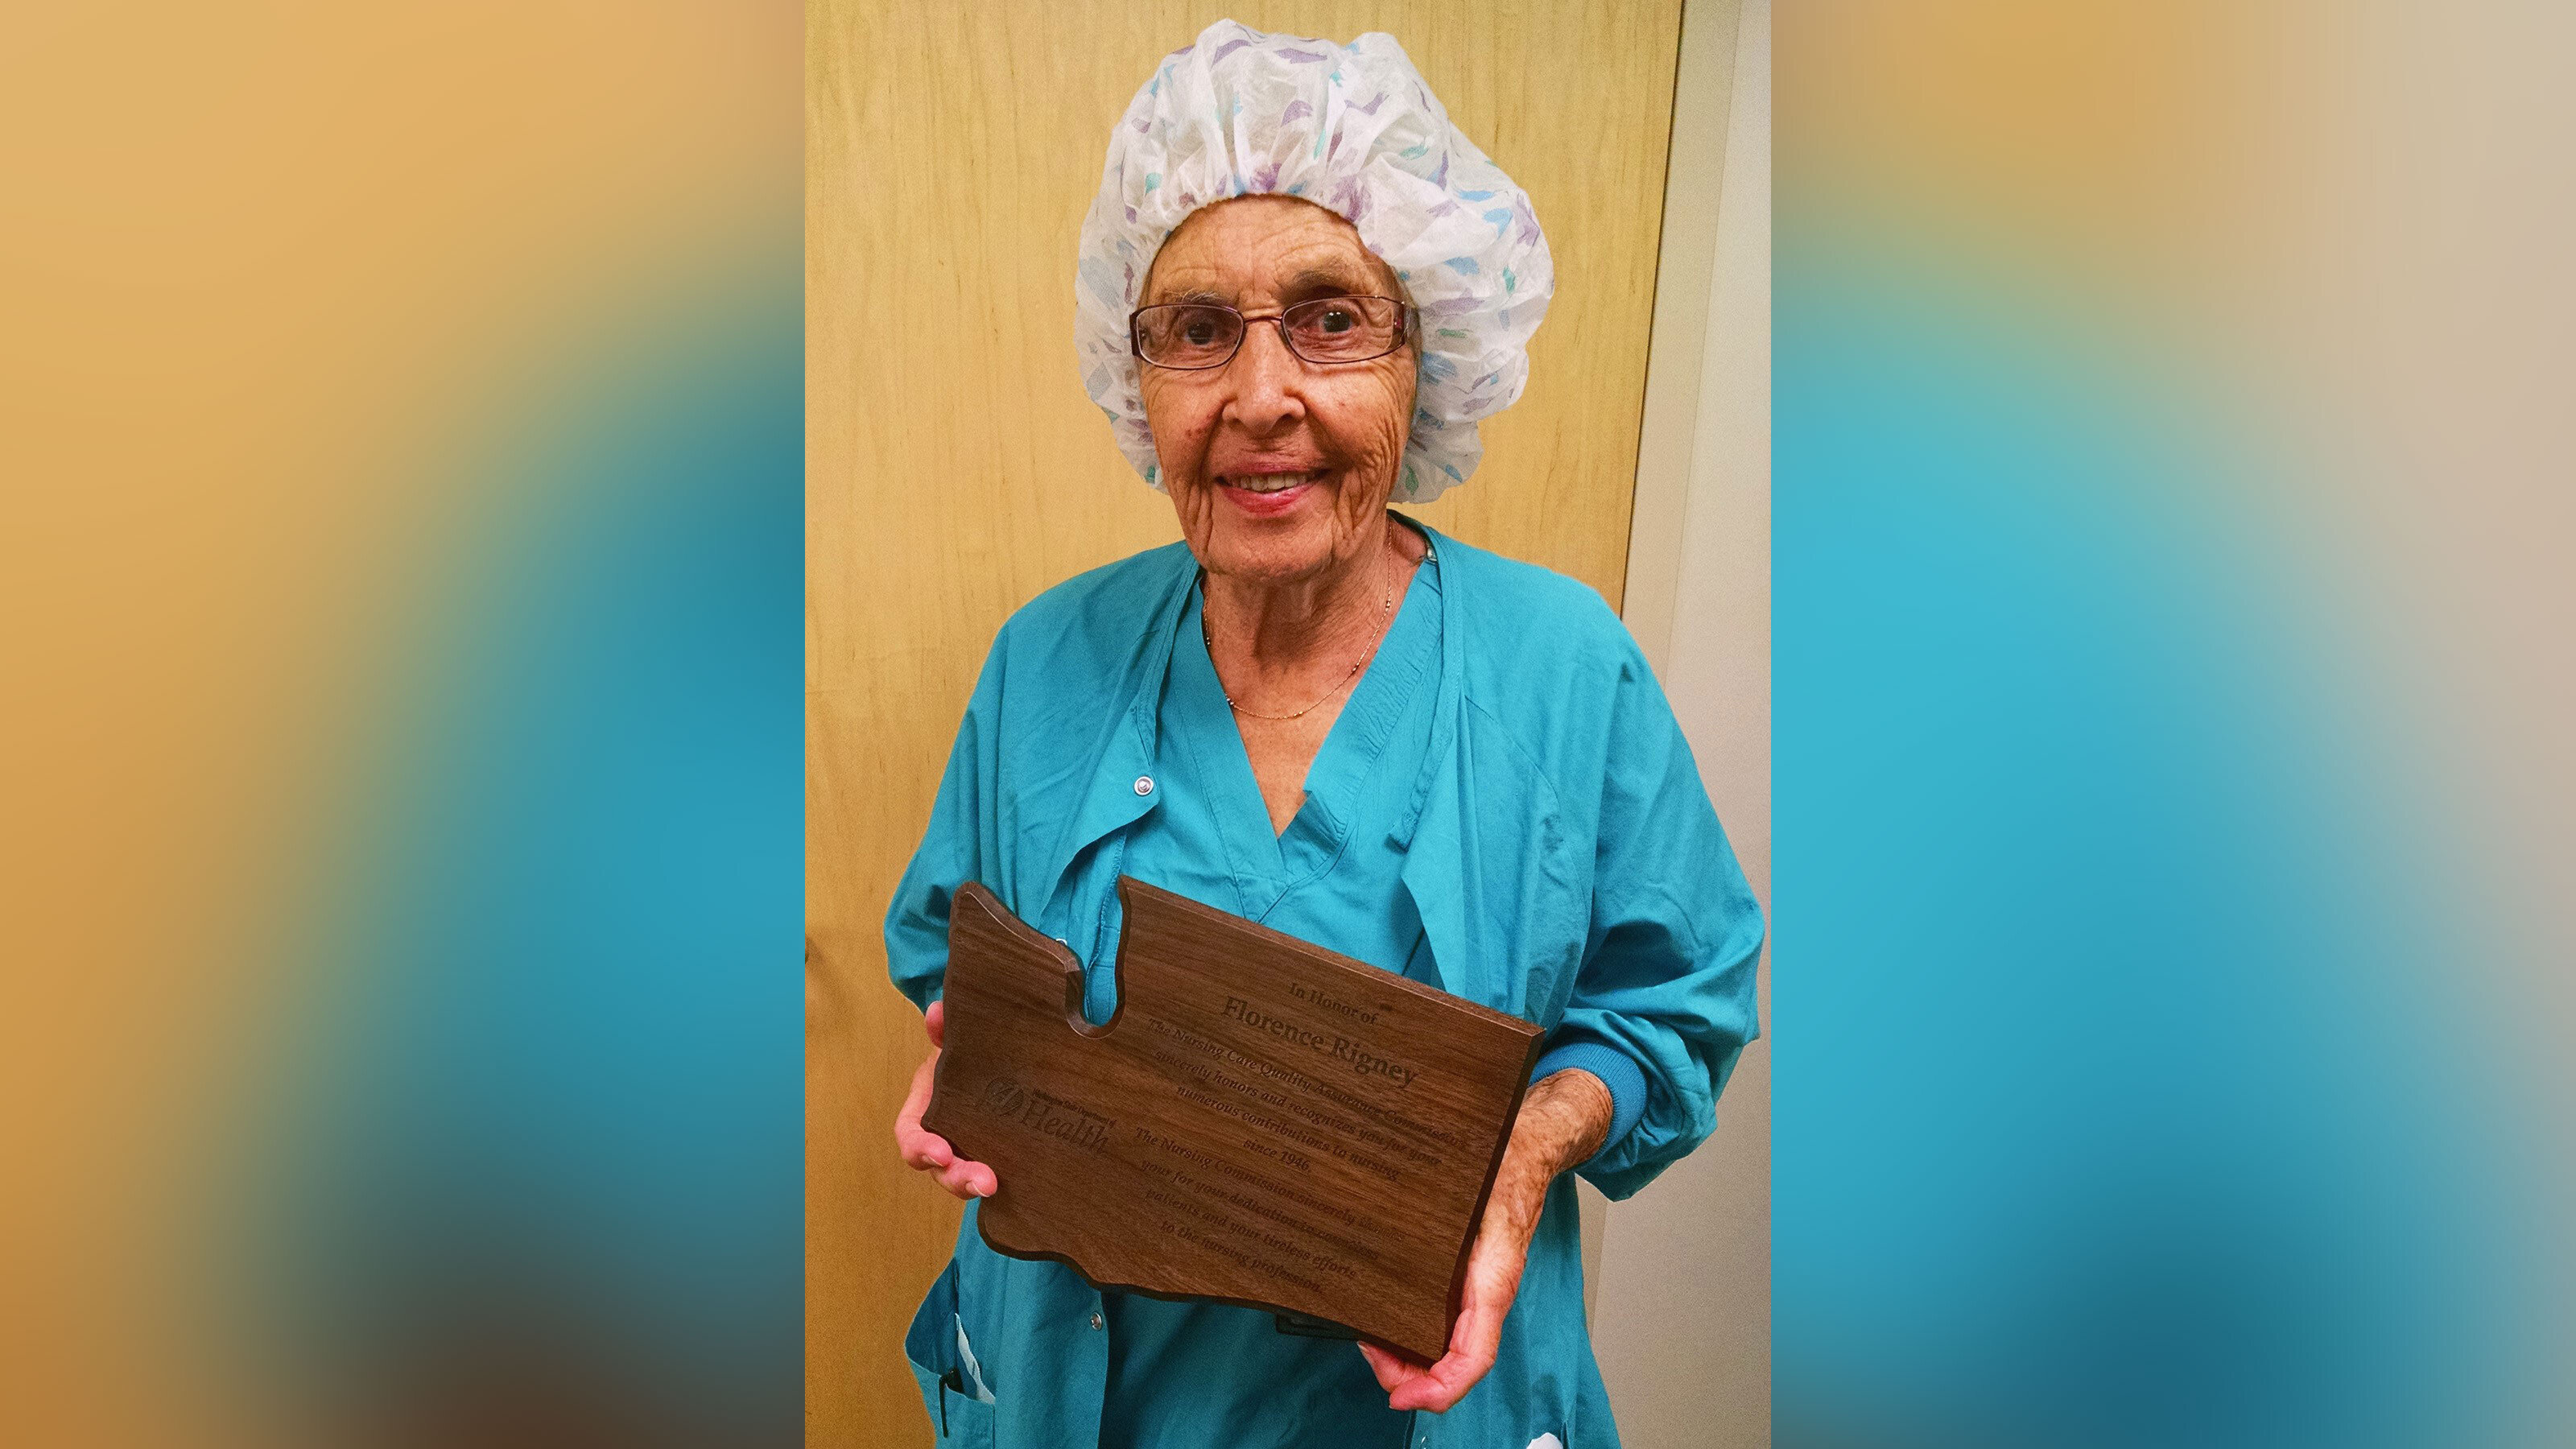 Florence 'SeeSee' Rigney, said to be America's oldest working nurse, retires at the age of 96